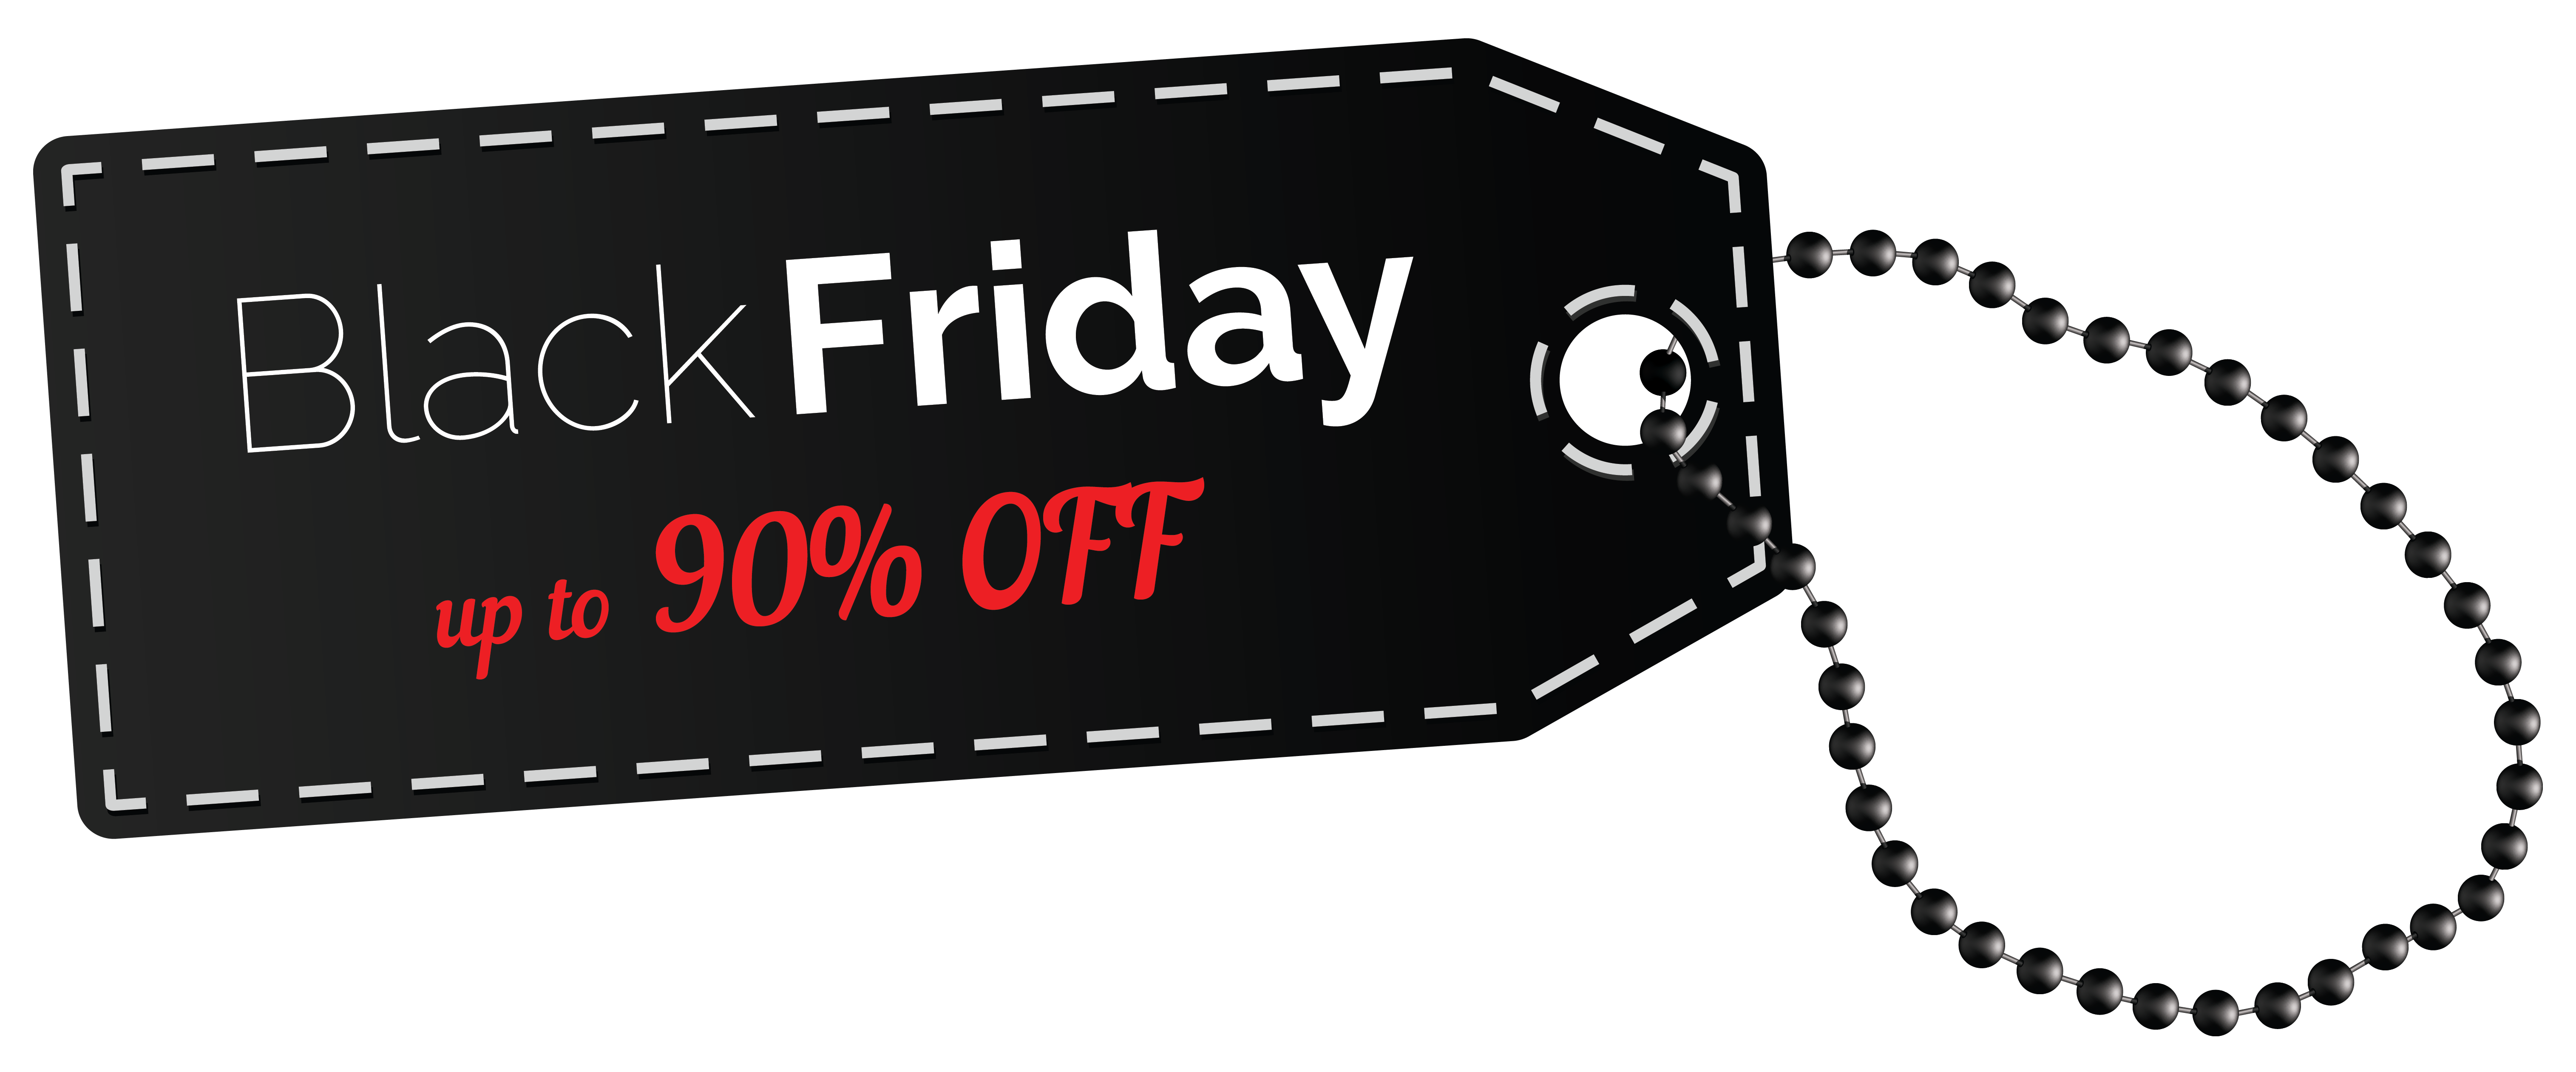 Black Friday 90% OFF Tag PNG Clipart Image.